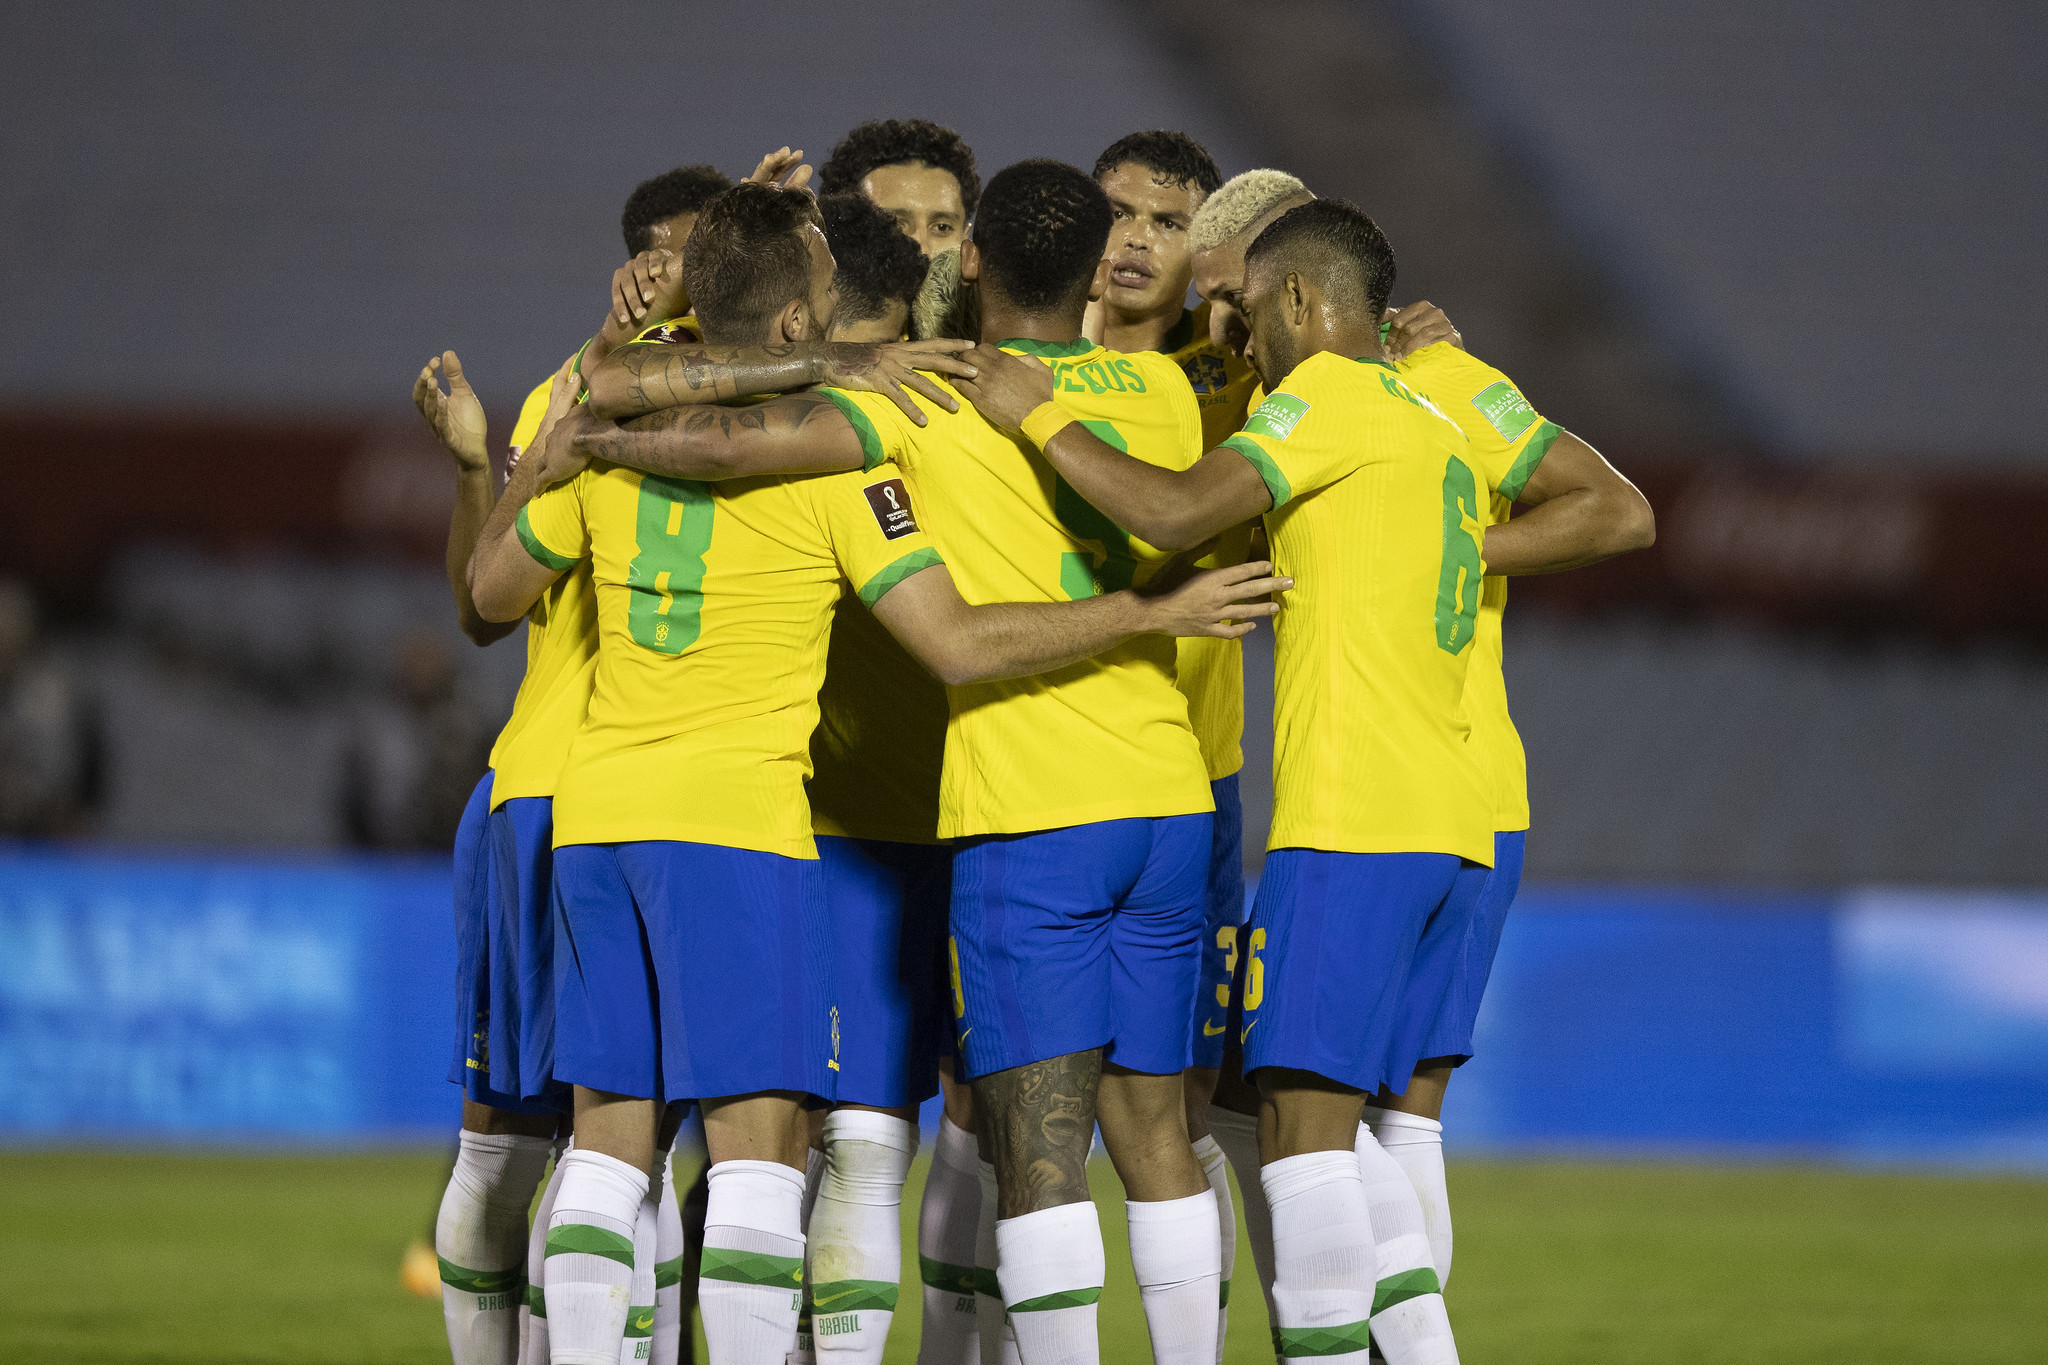 Brasil imparable en las eliminatorias